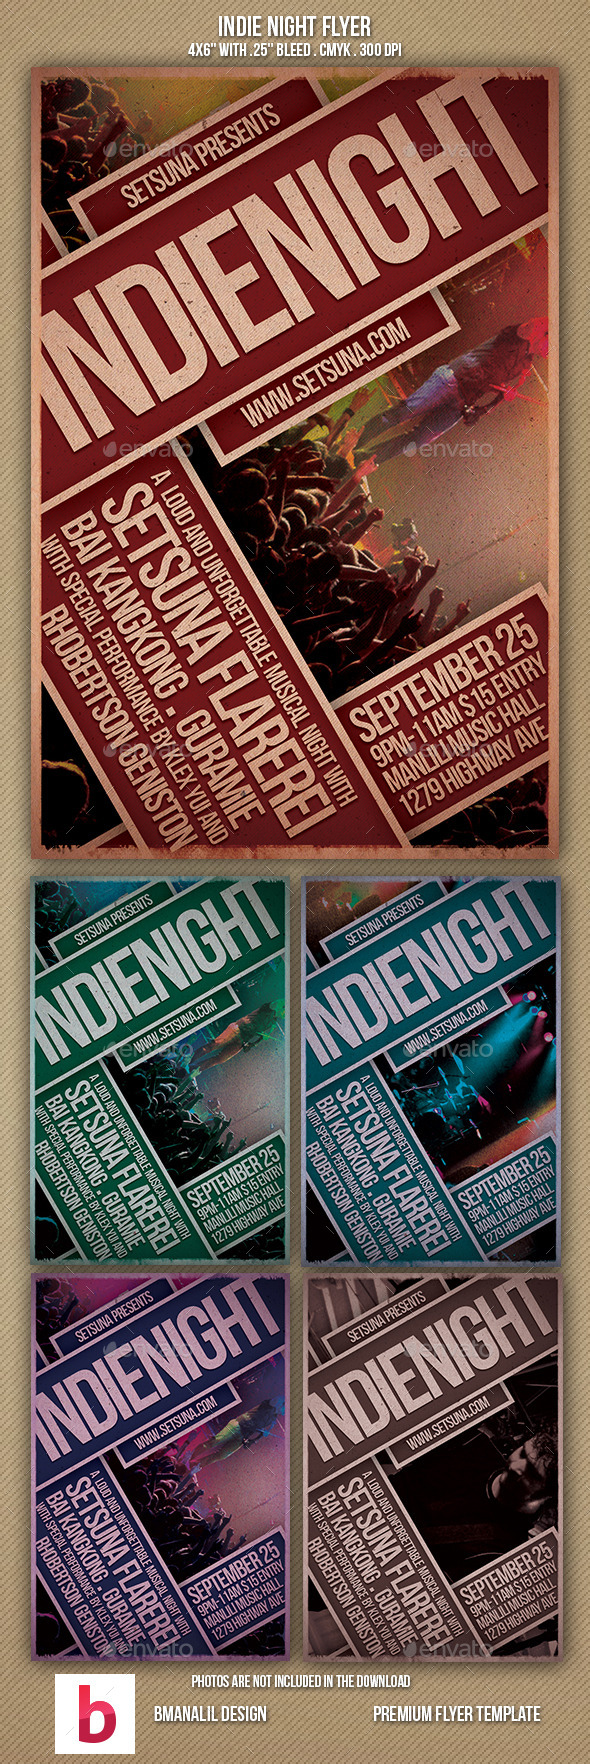 Indie Night Flyer - Concerts Events